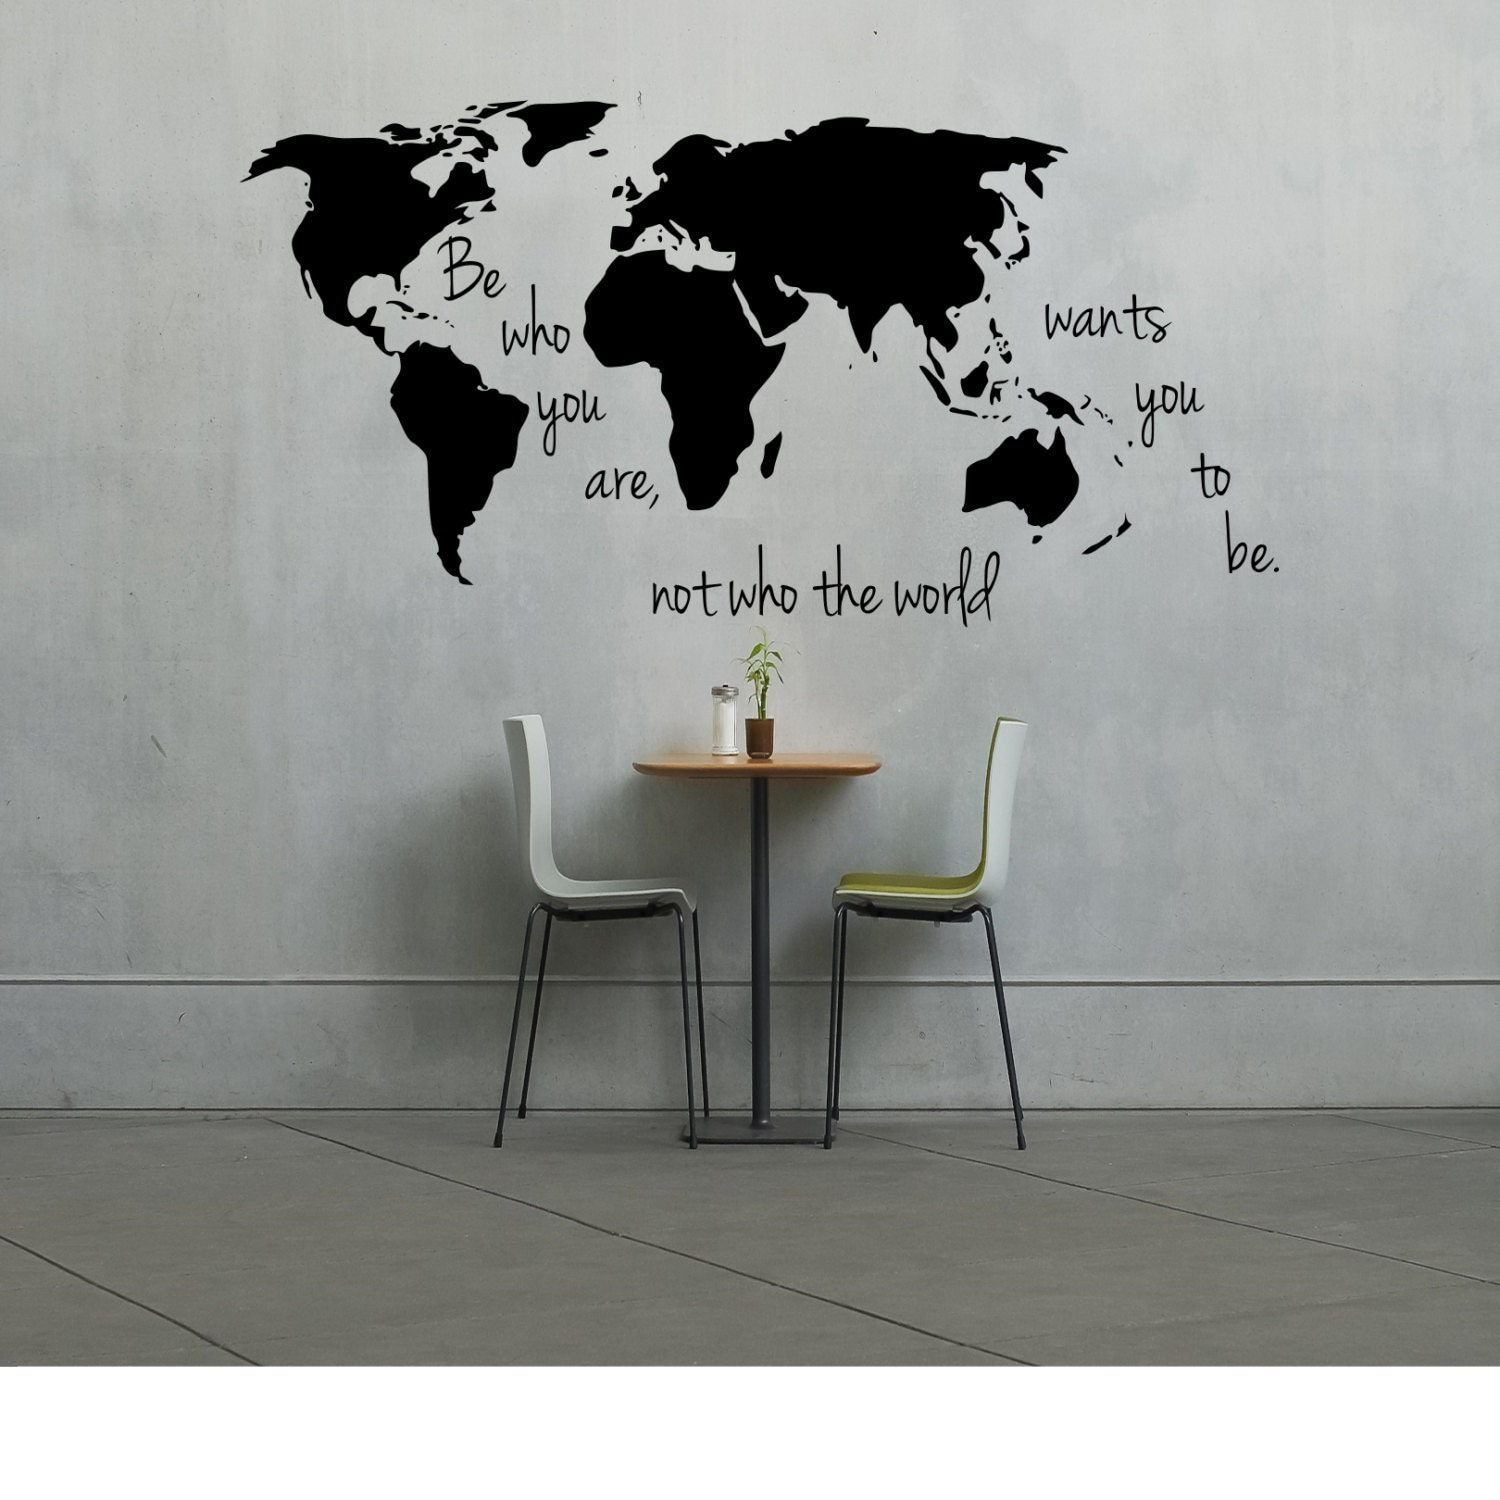 Large world map wall sticker kamos sticker jumbo world map decal world map with countries decal zoom part 65 gumiabroncs Images